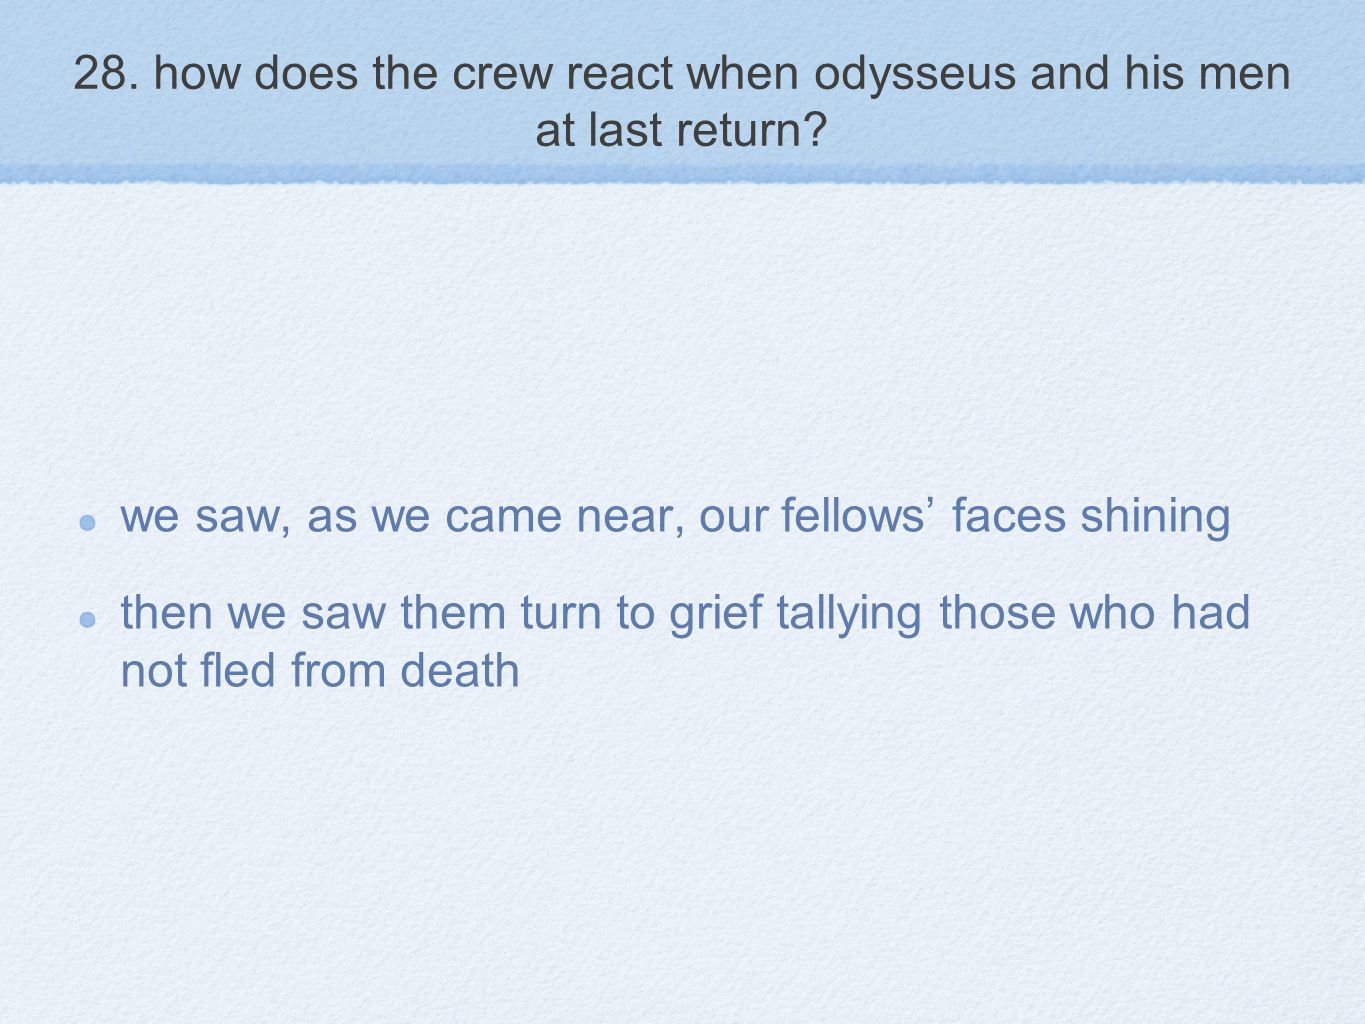 28. how does the crew react when odysseus and his men at last return